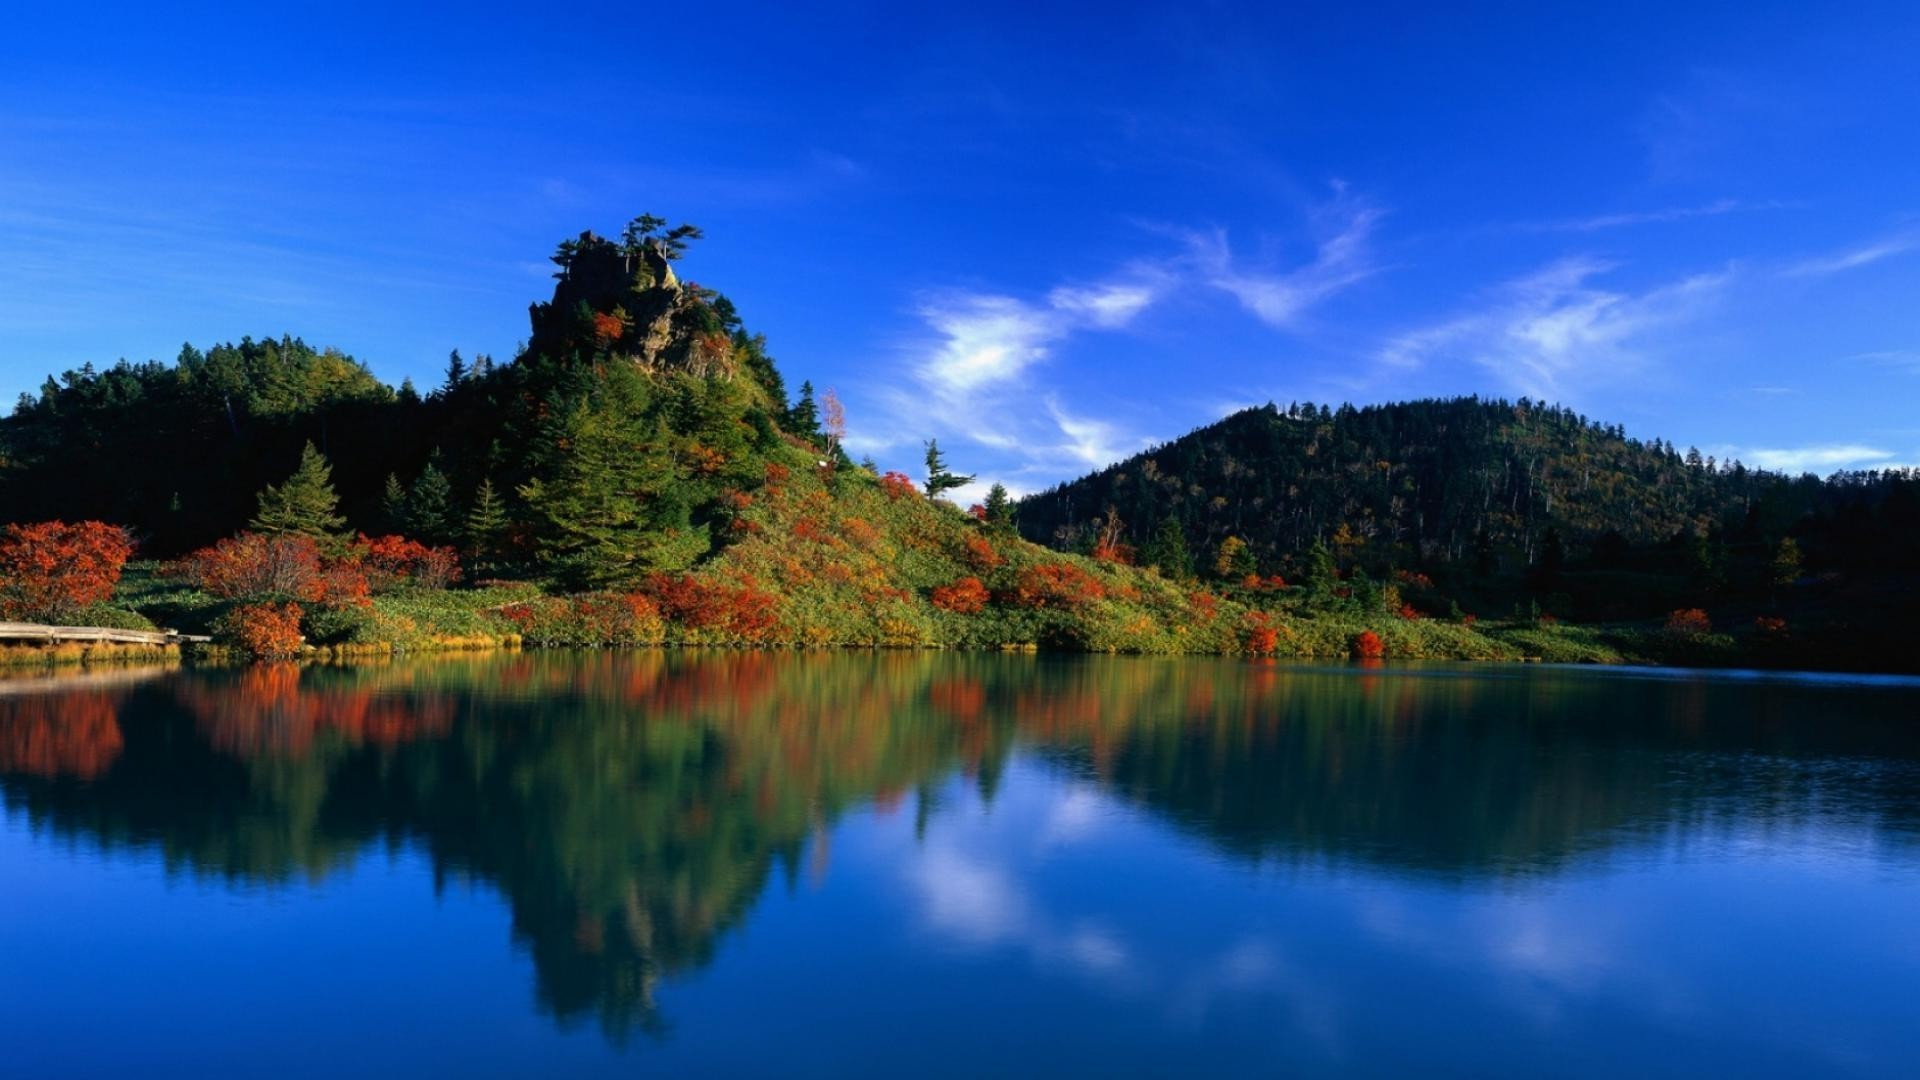 Mountains,lake,sky,trees